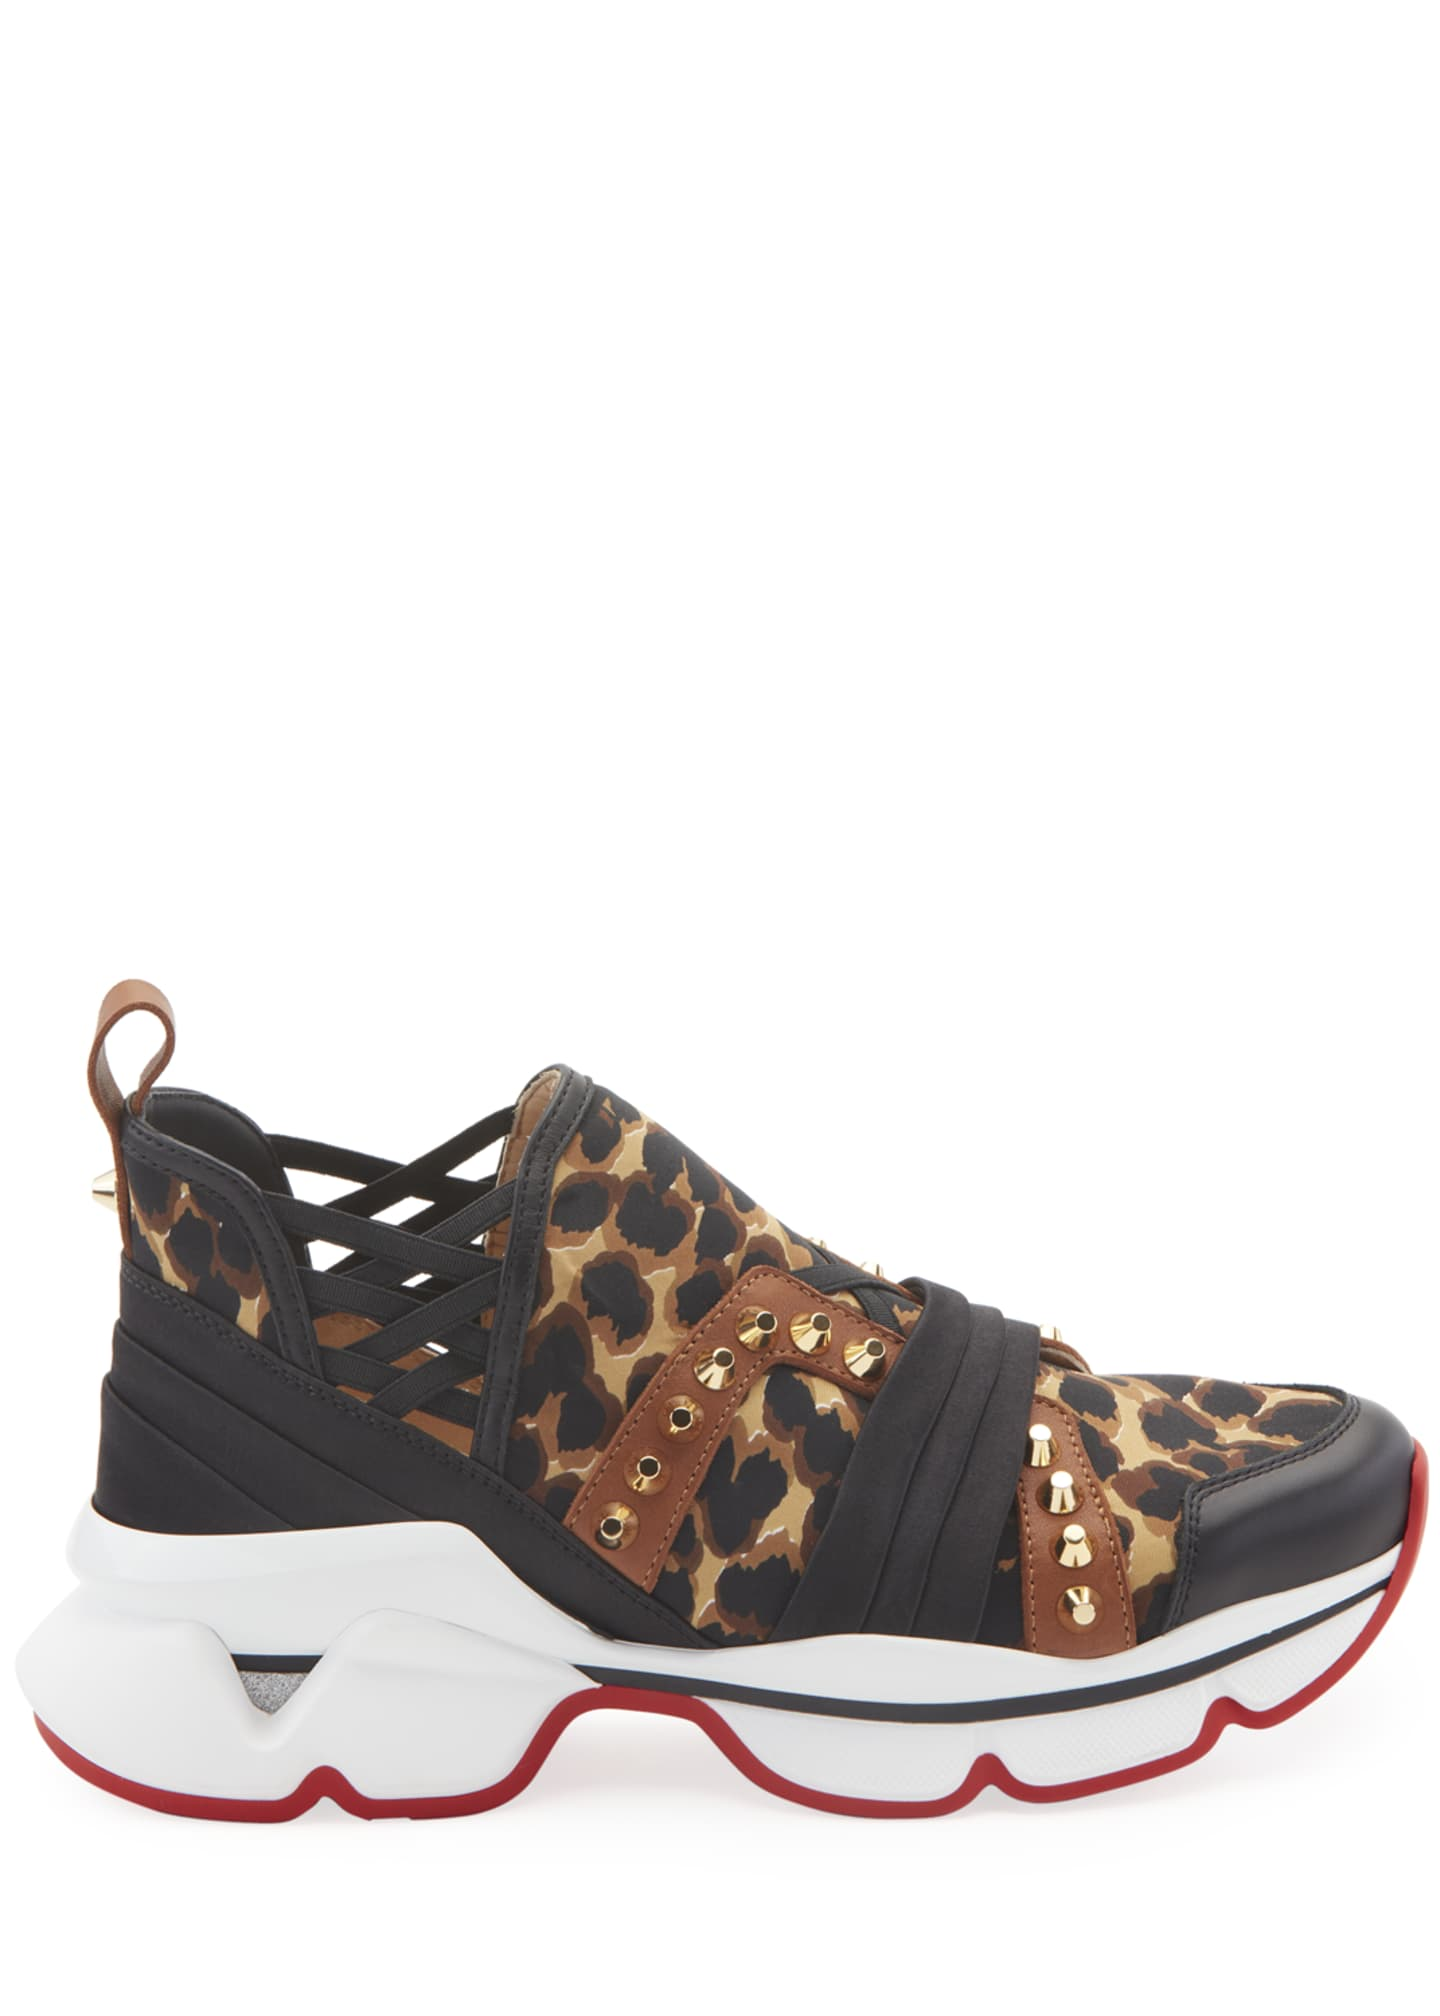 Image 2 of 4: 123 Run Leopard Red Sole Sneakers